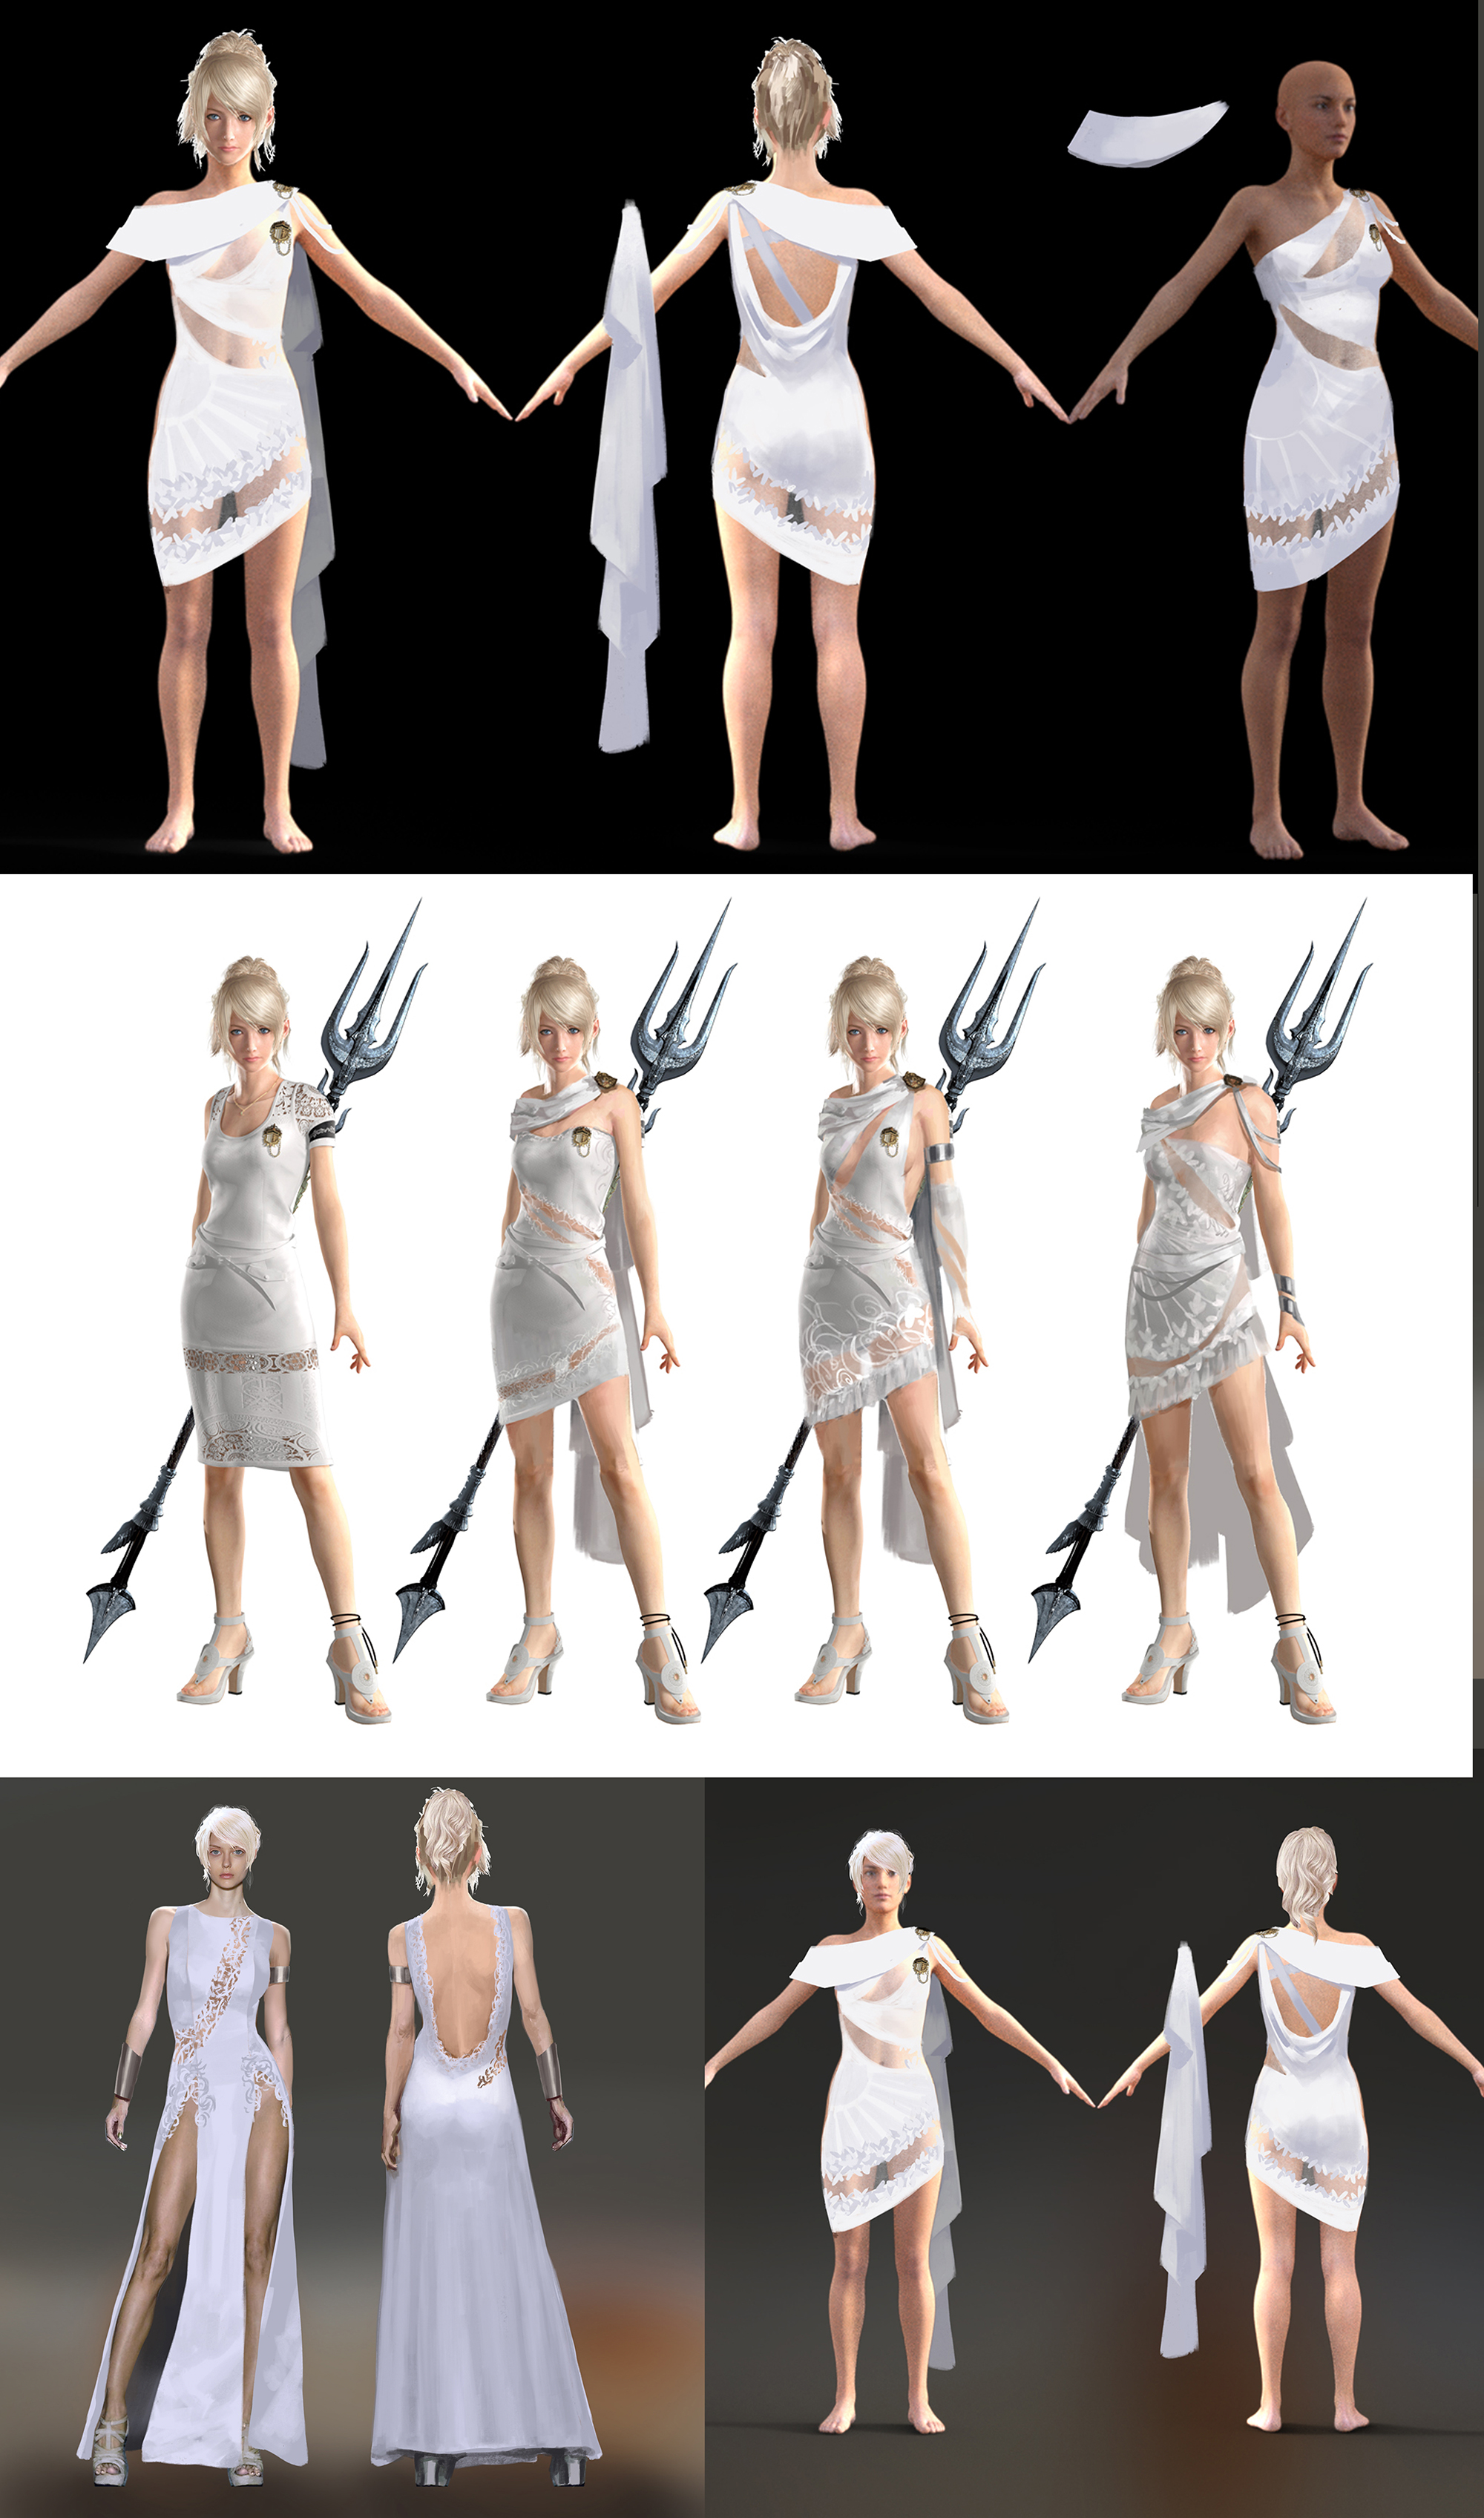 Art by Ryan Lee and Marco Nelor. Costume design for a dress worn by Alexis Ren in live action commercials.